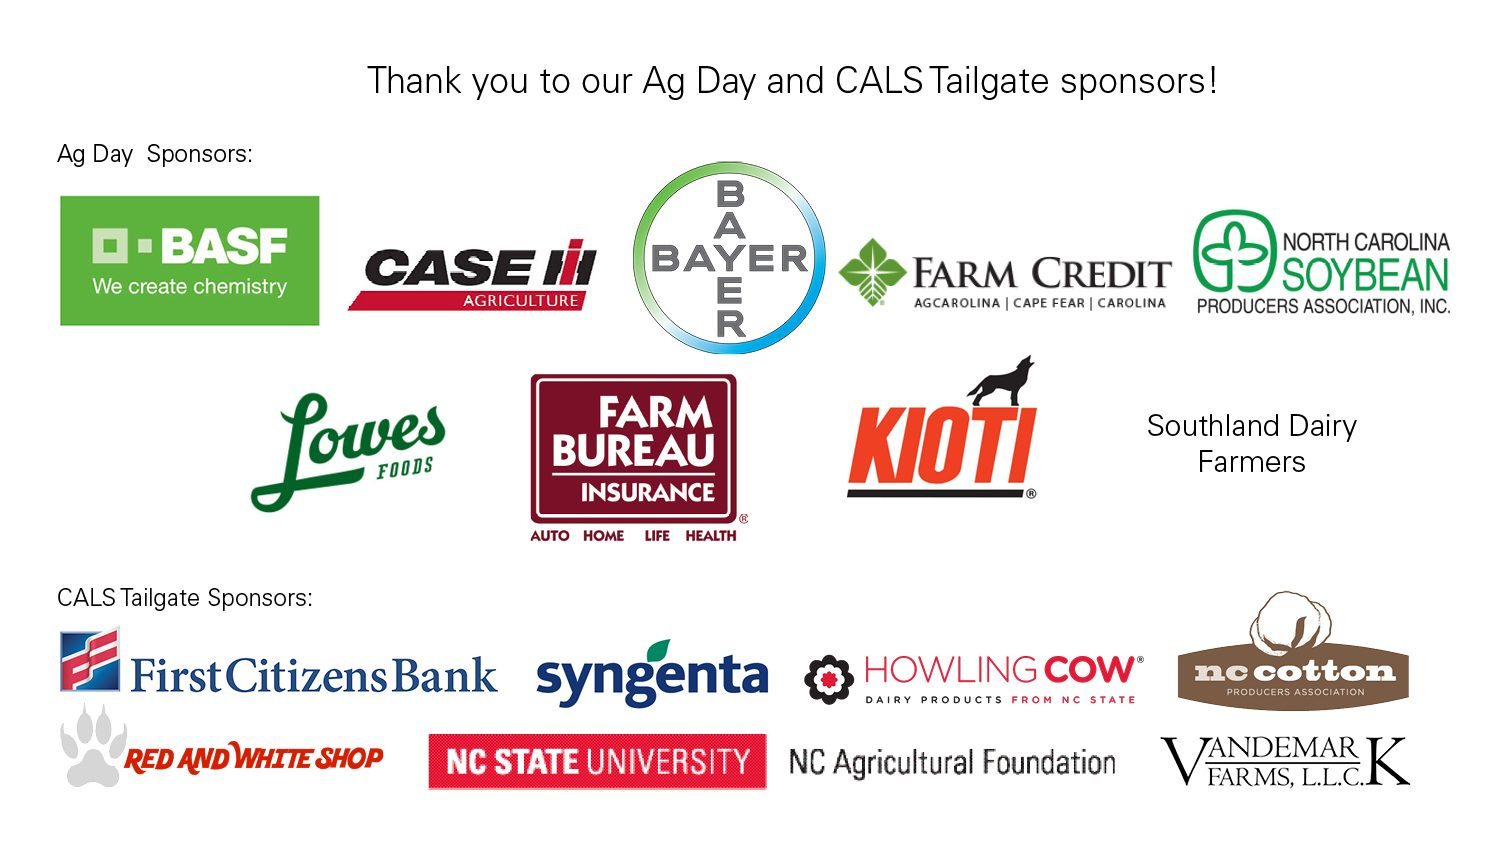 logos for the sponsors of the 2017 Ag Day and Tailgate on 9/9